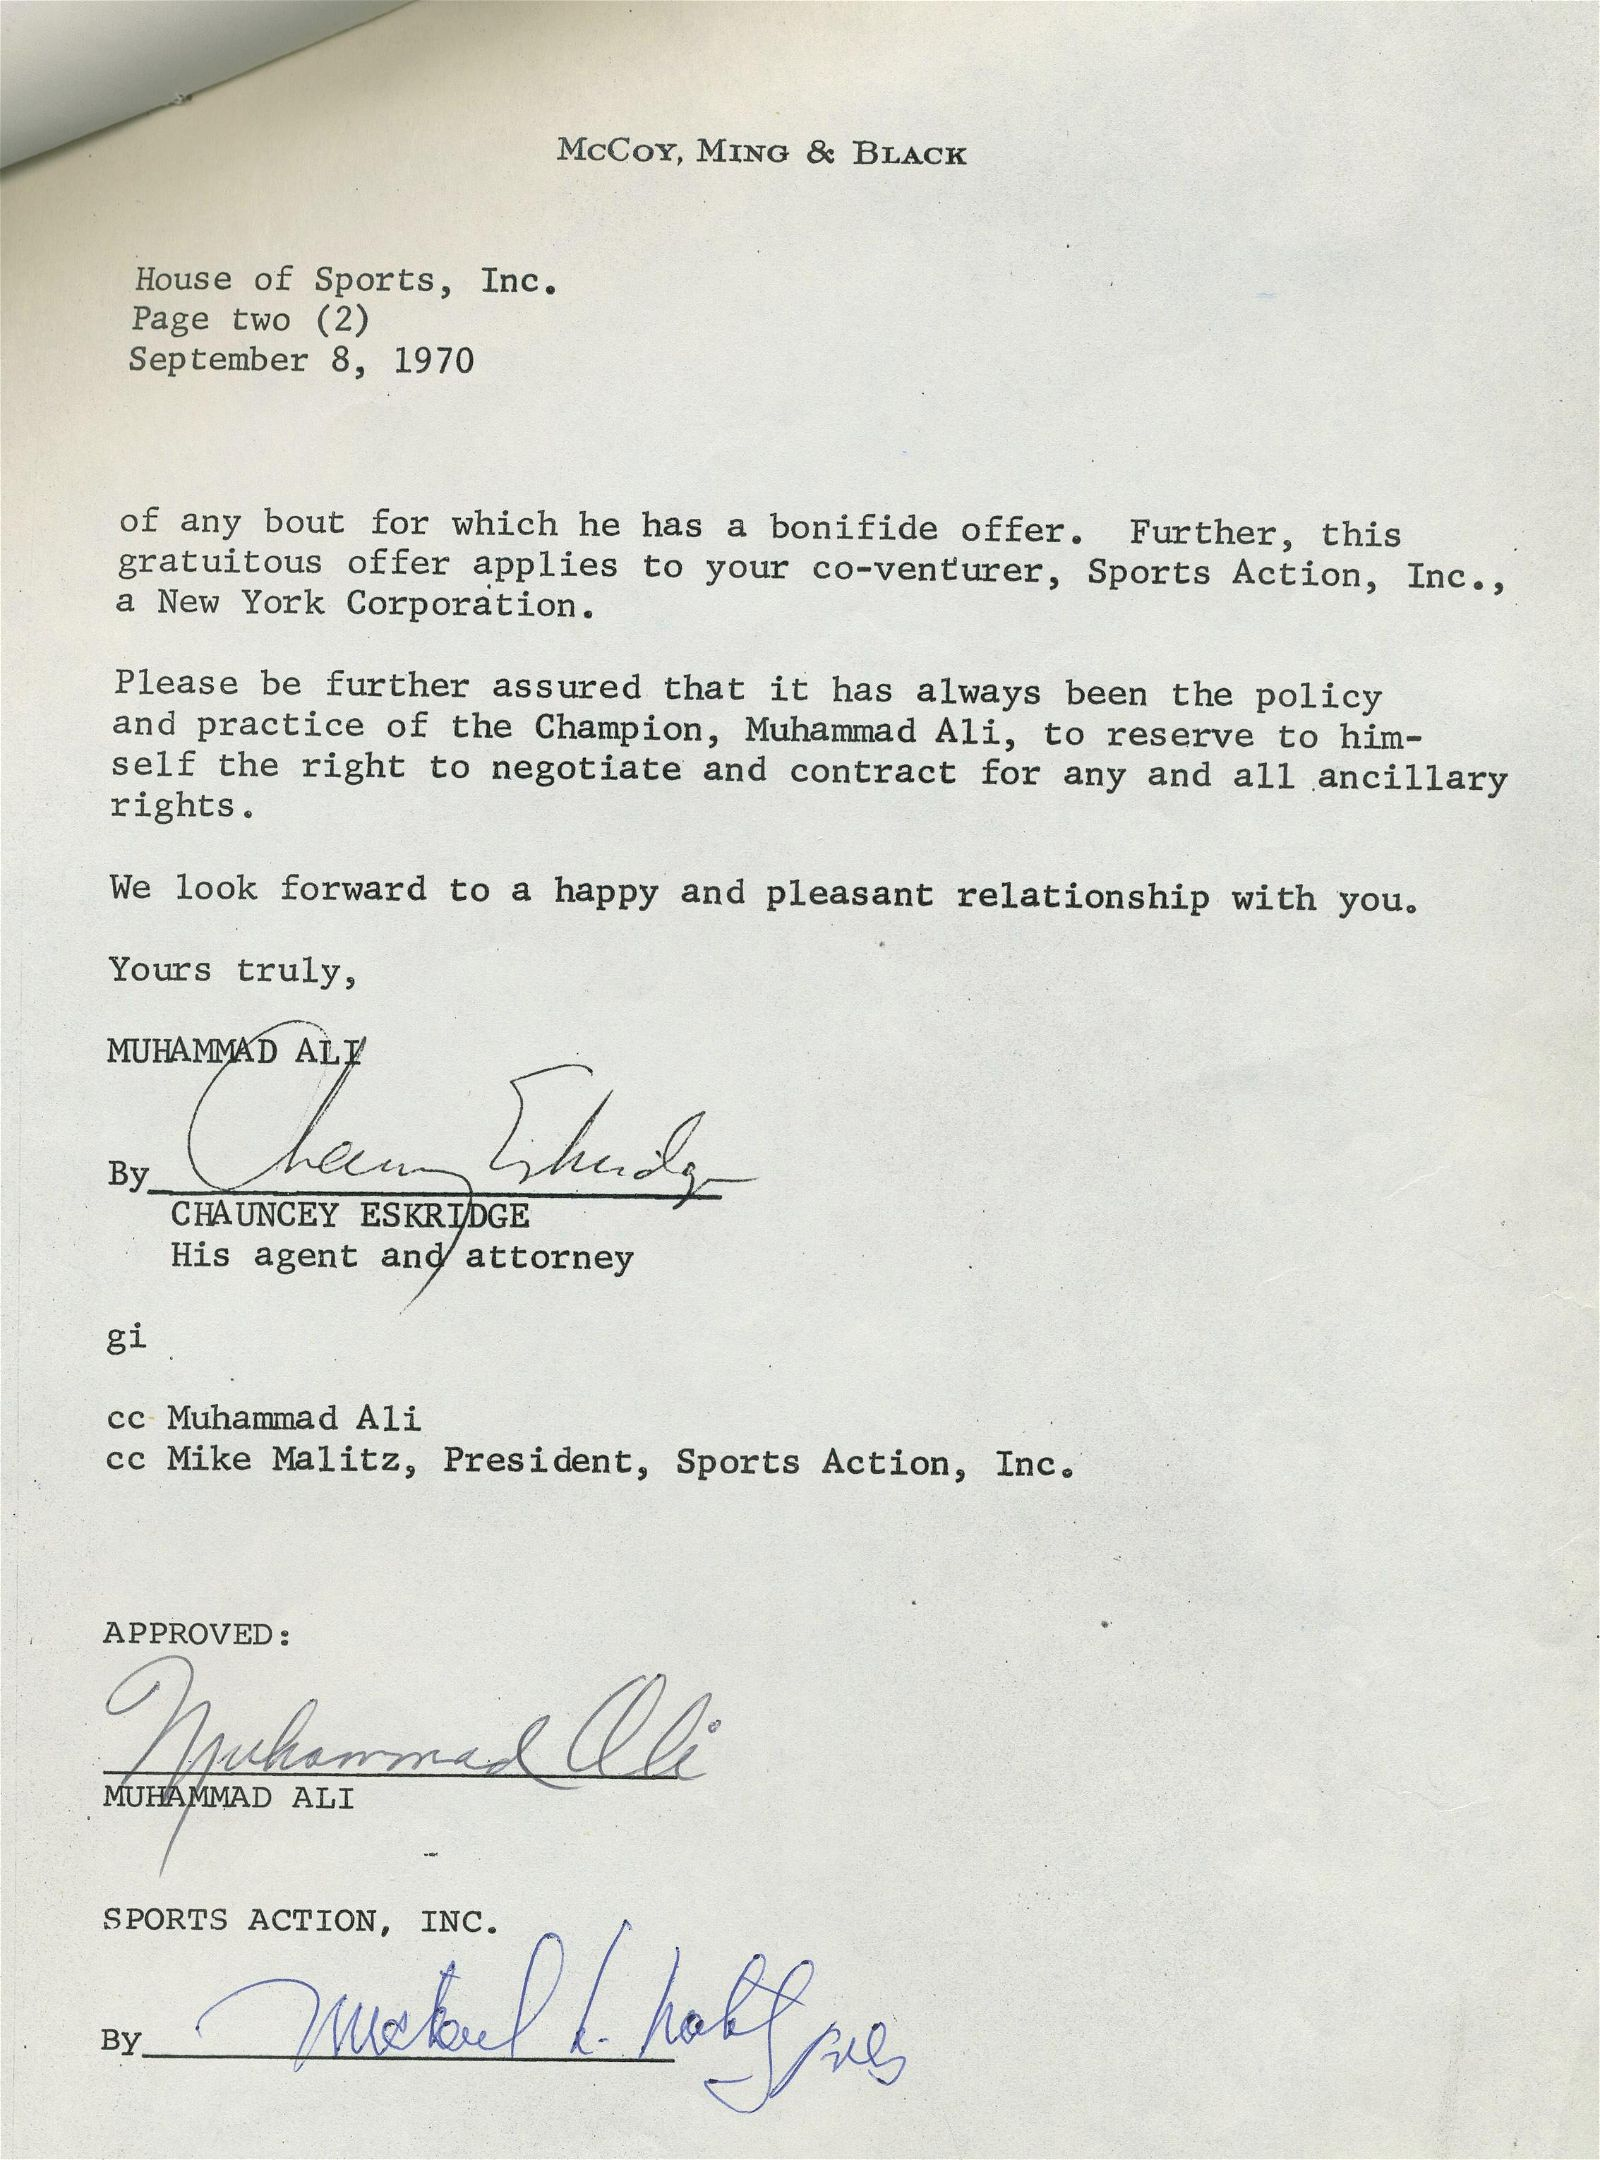 Ali vs. Quarry Signed Fight Contract